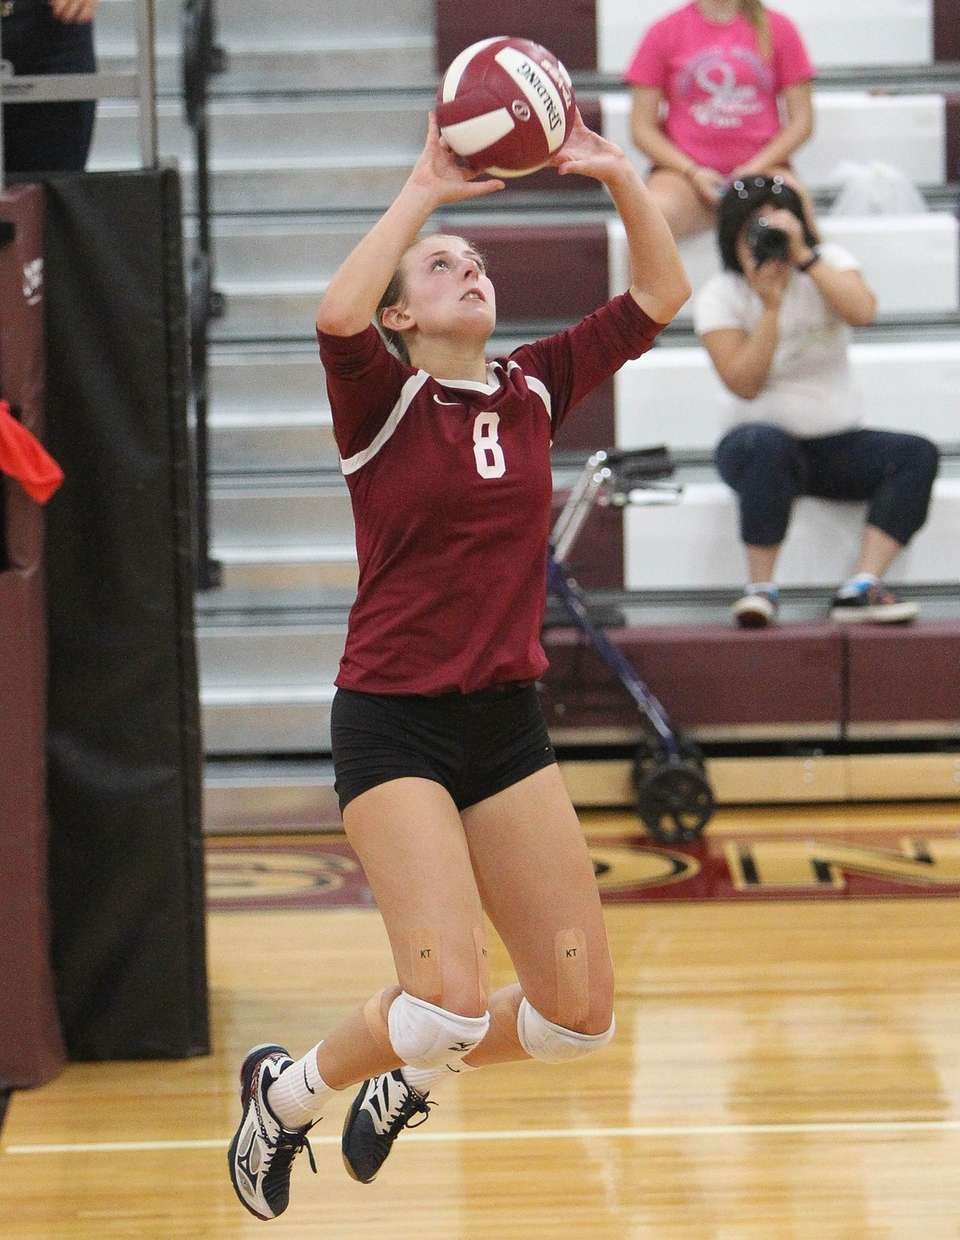 Kings Park's Haley Holmes (8) sets the ball